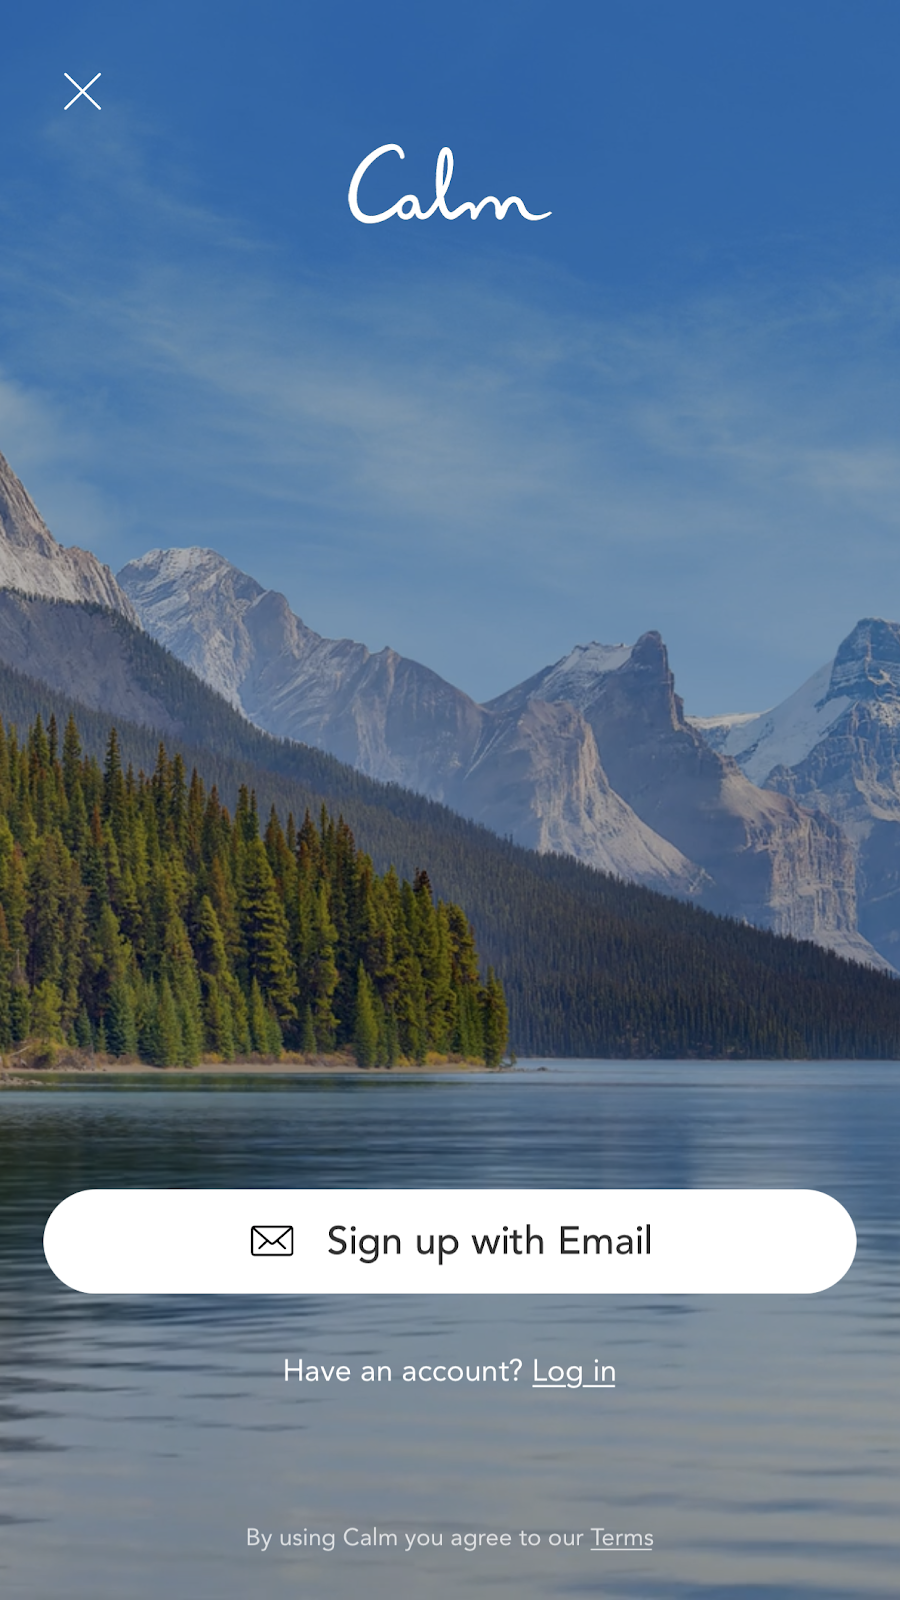 mobile screenshot from mindfulness app Calm. this is the signup screen—there is a CTA button to sign up with email